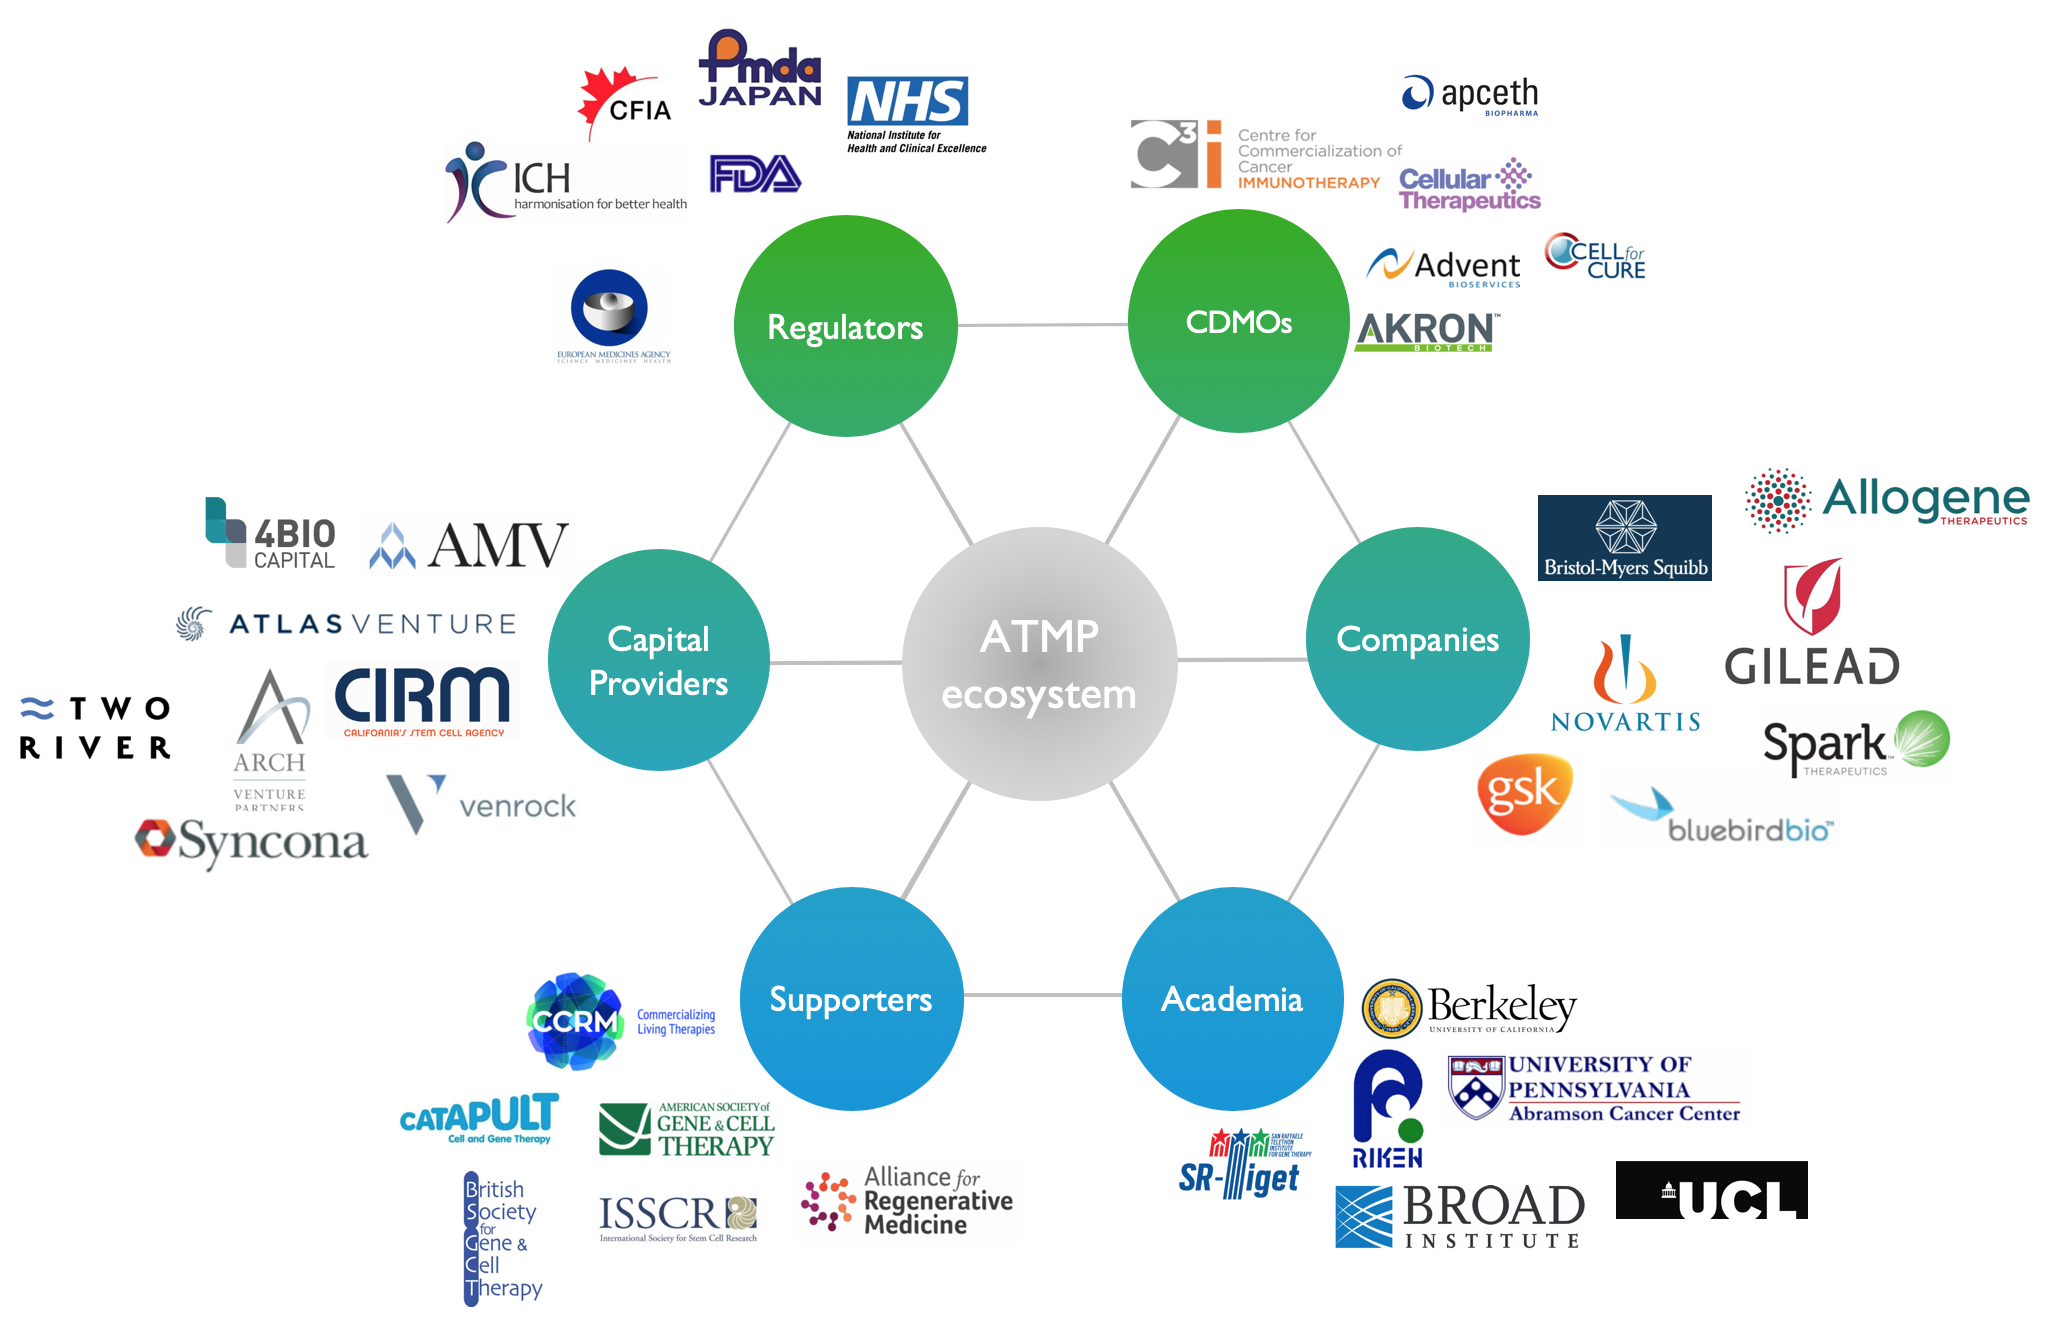 Figure 1.  A snapshot of some of the supporters of the global ATMP ecosystem.